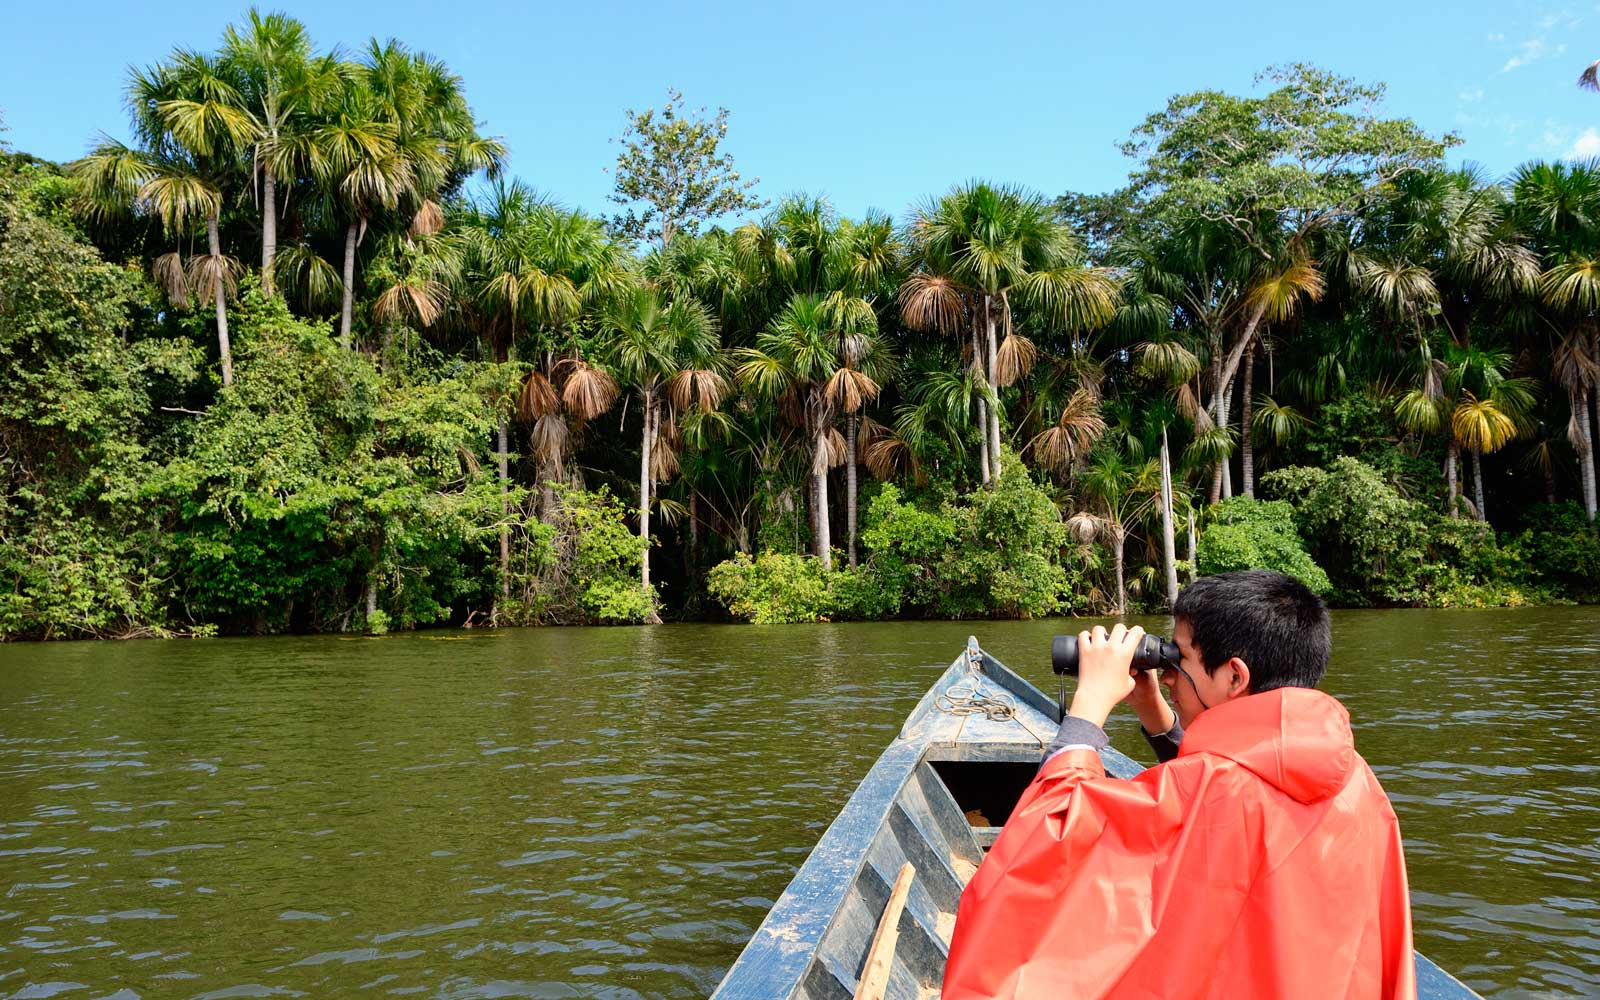 Tambopata National Park in Peru (approaching by boat)